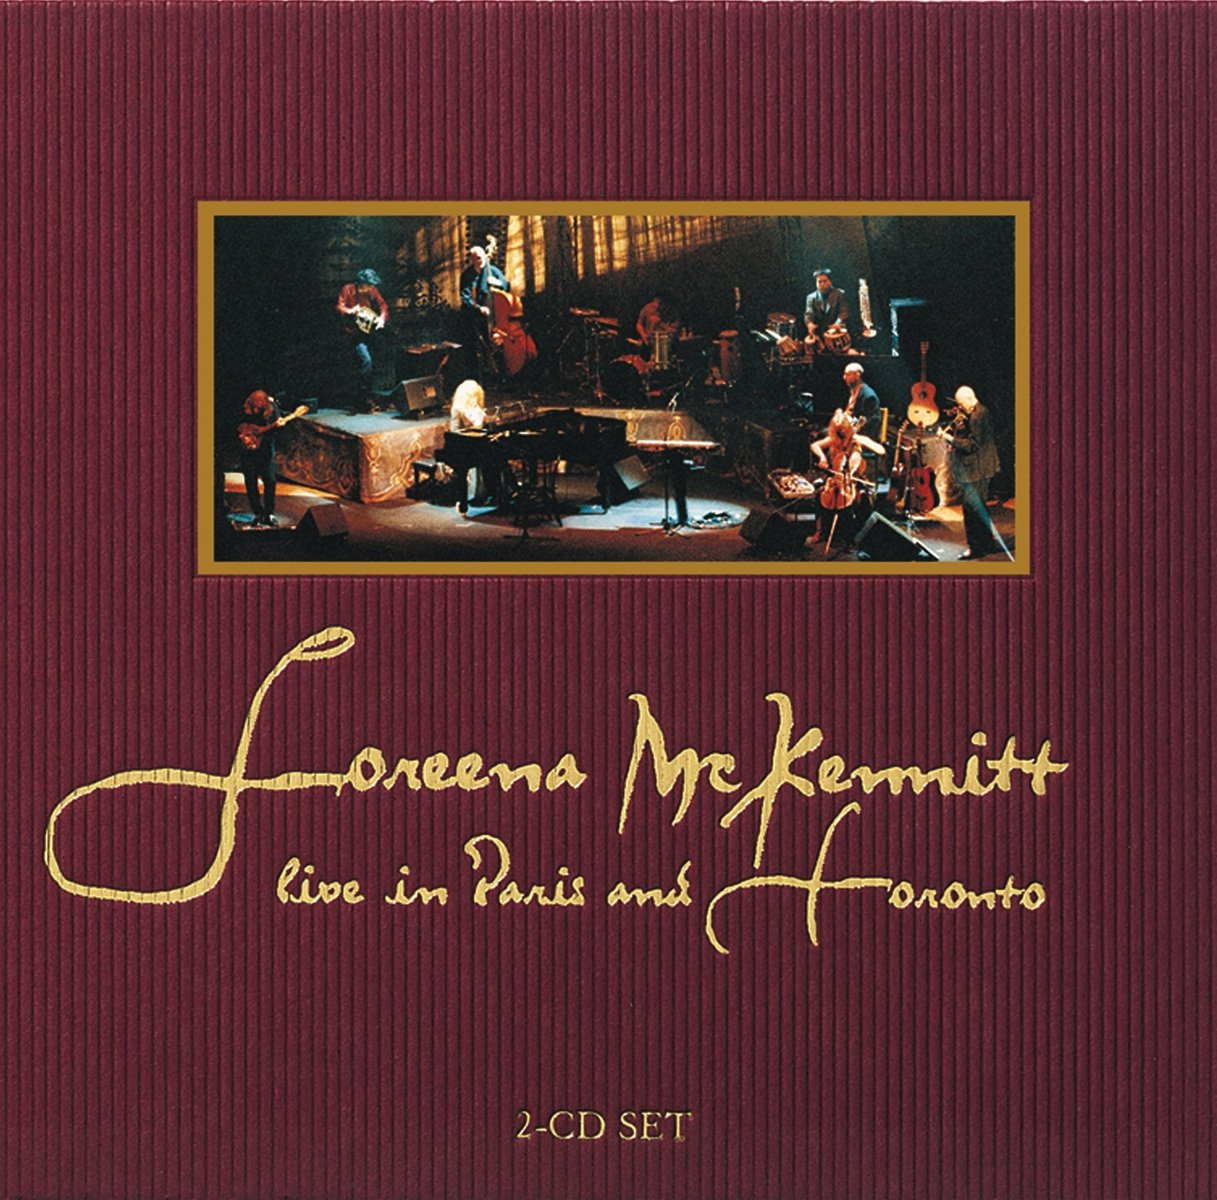 Live In Paris And Toronto -Loreena McKennitt QRCD 108: Loreena McKennitt: Amazon.es: Música